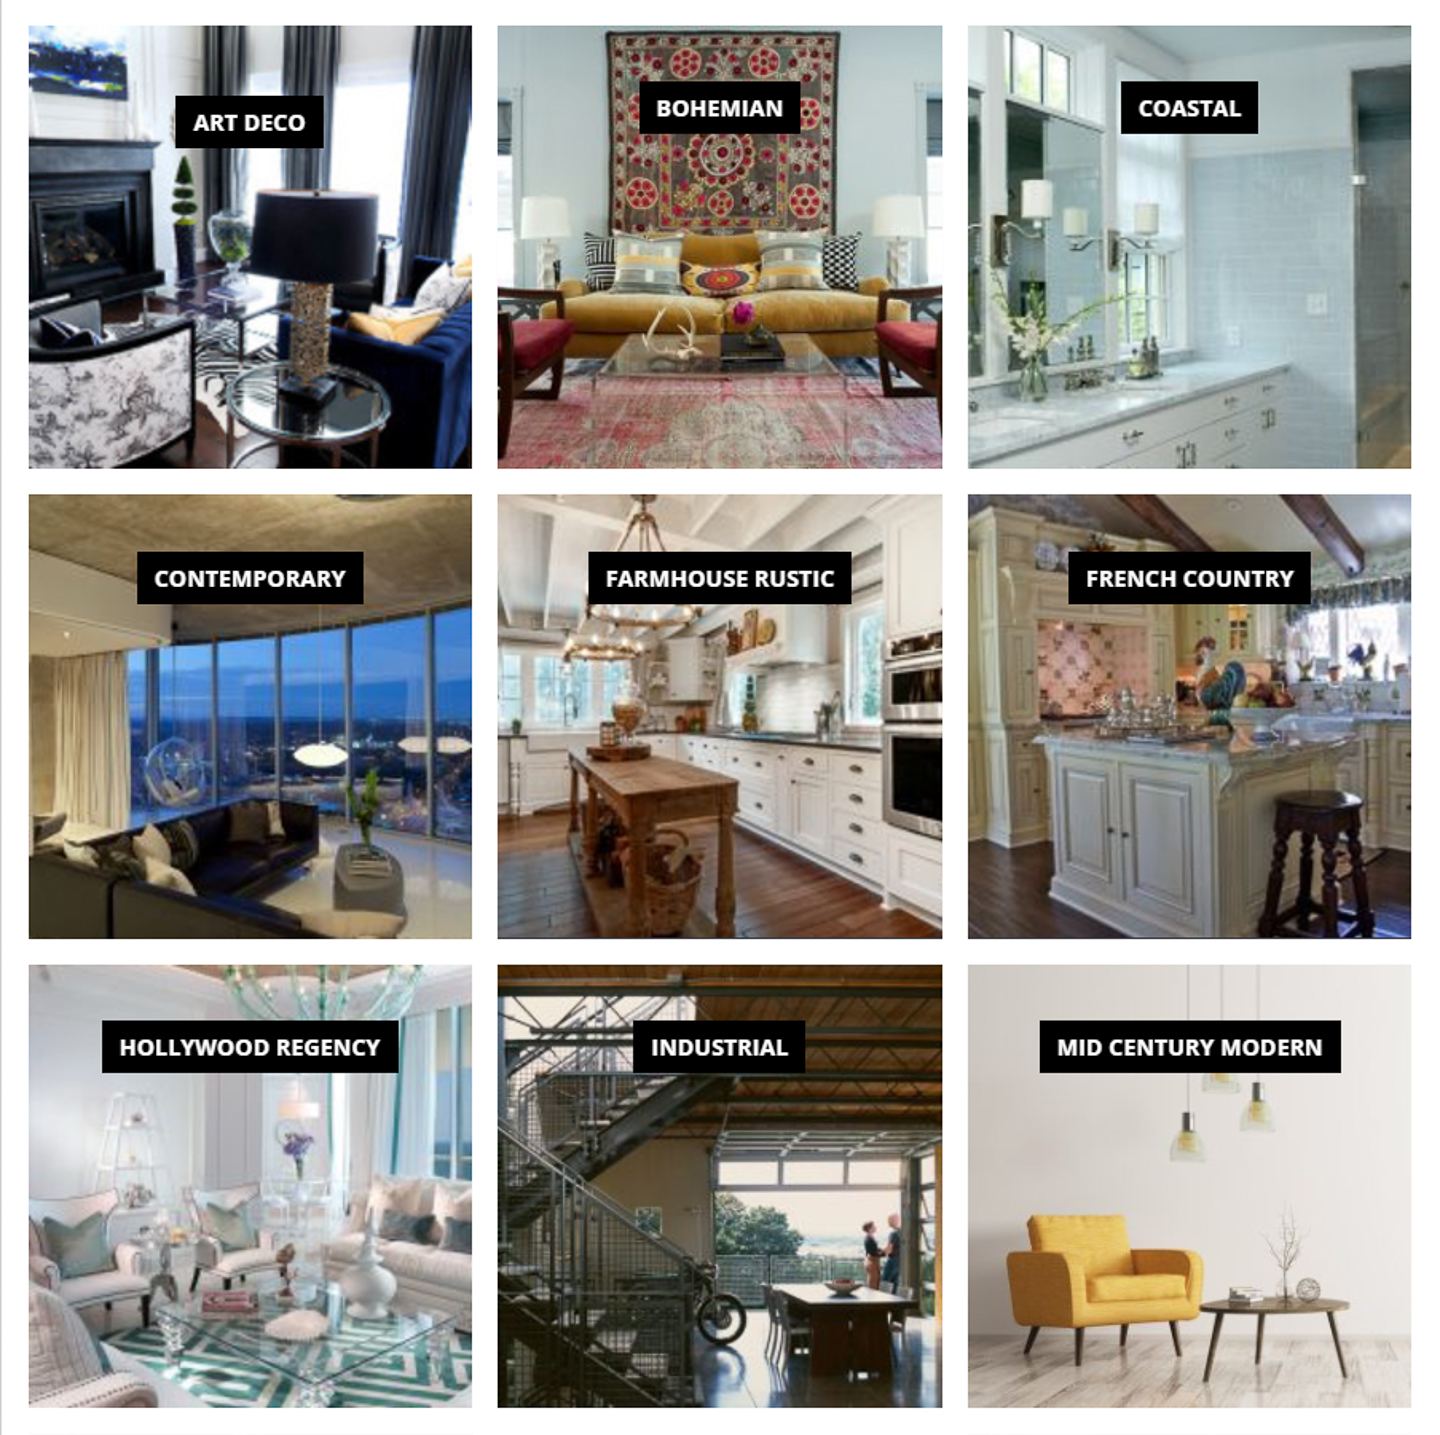 Decorating Styles 101 Find The Interior Design Styles You Love